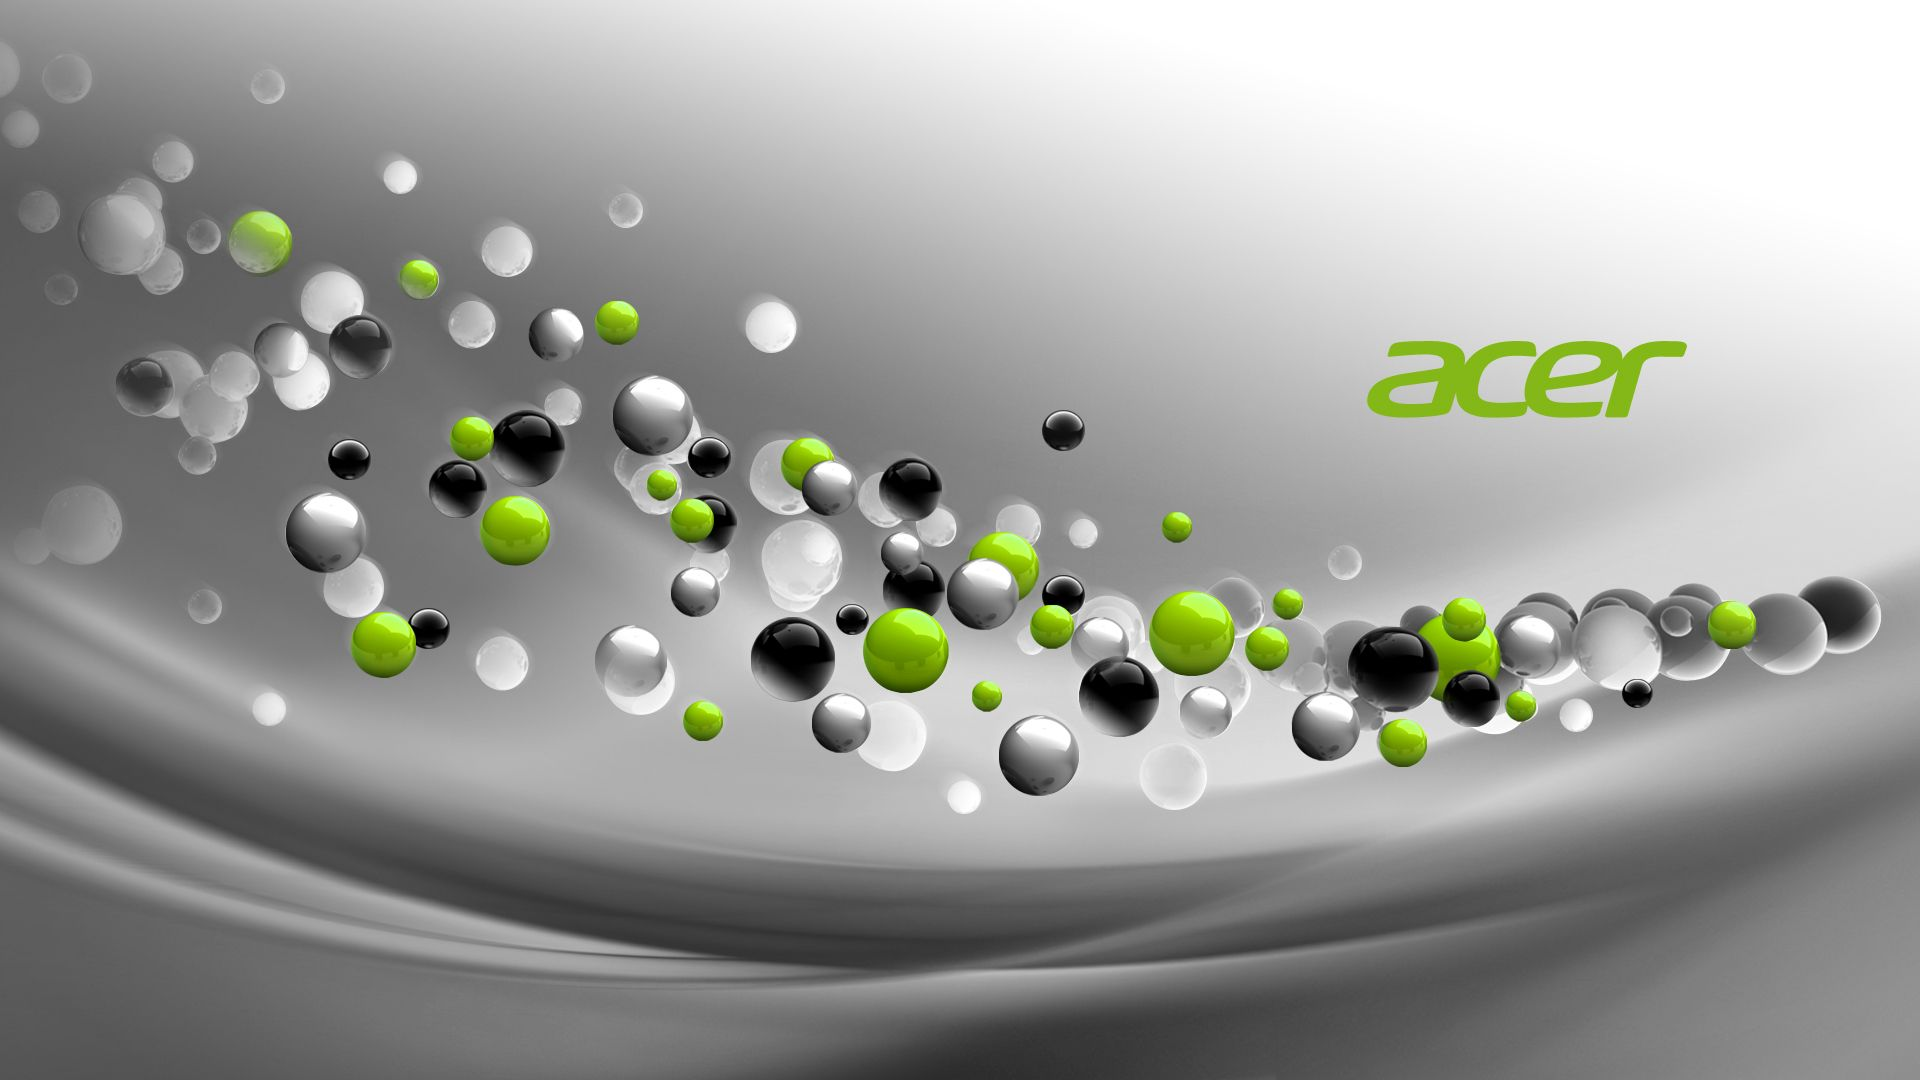 Acer wallpaper picture